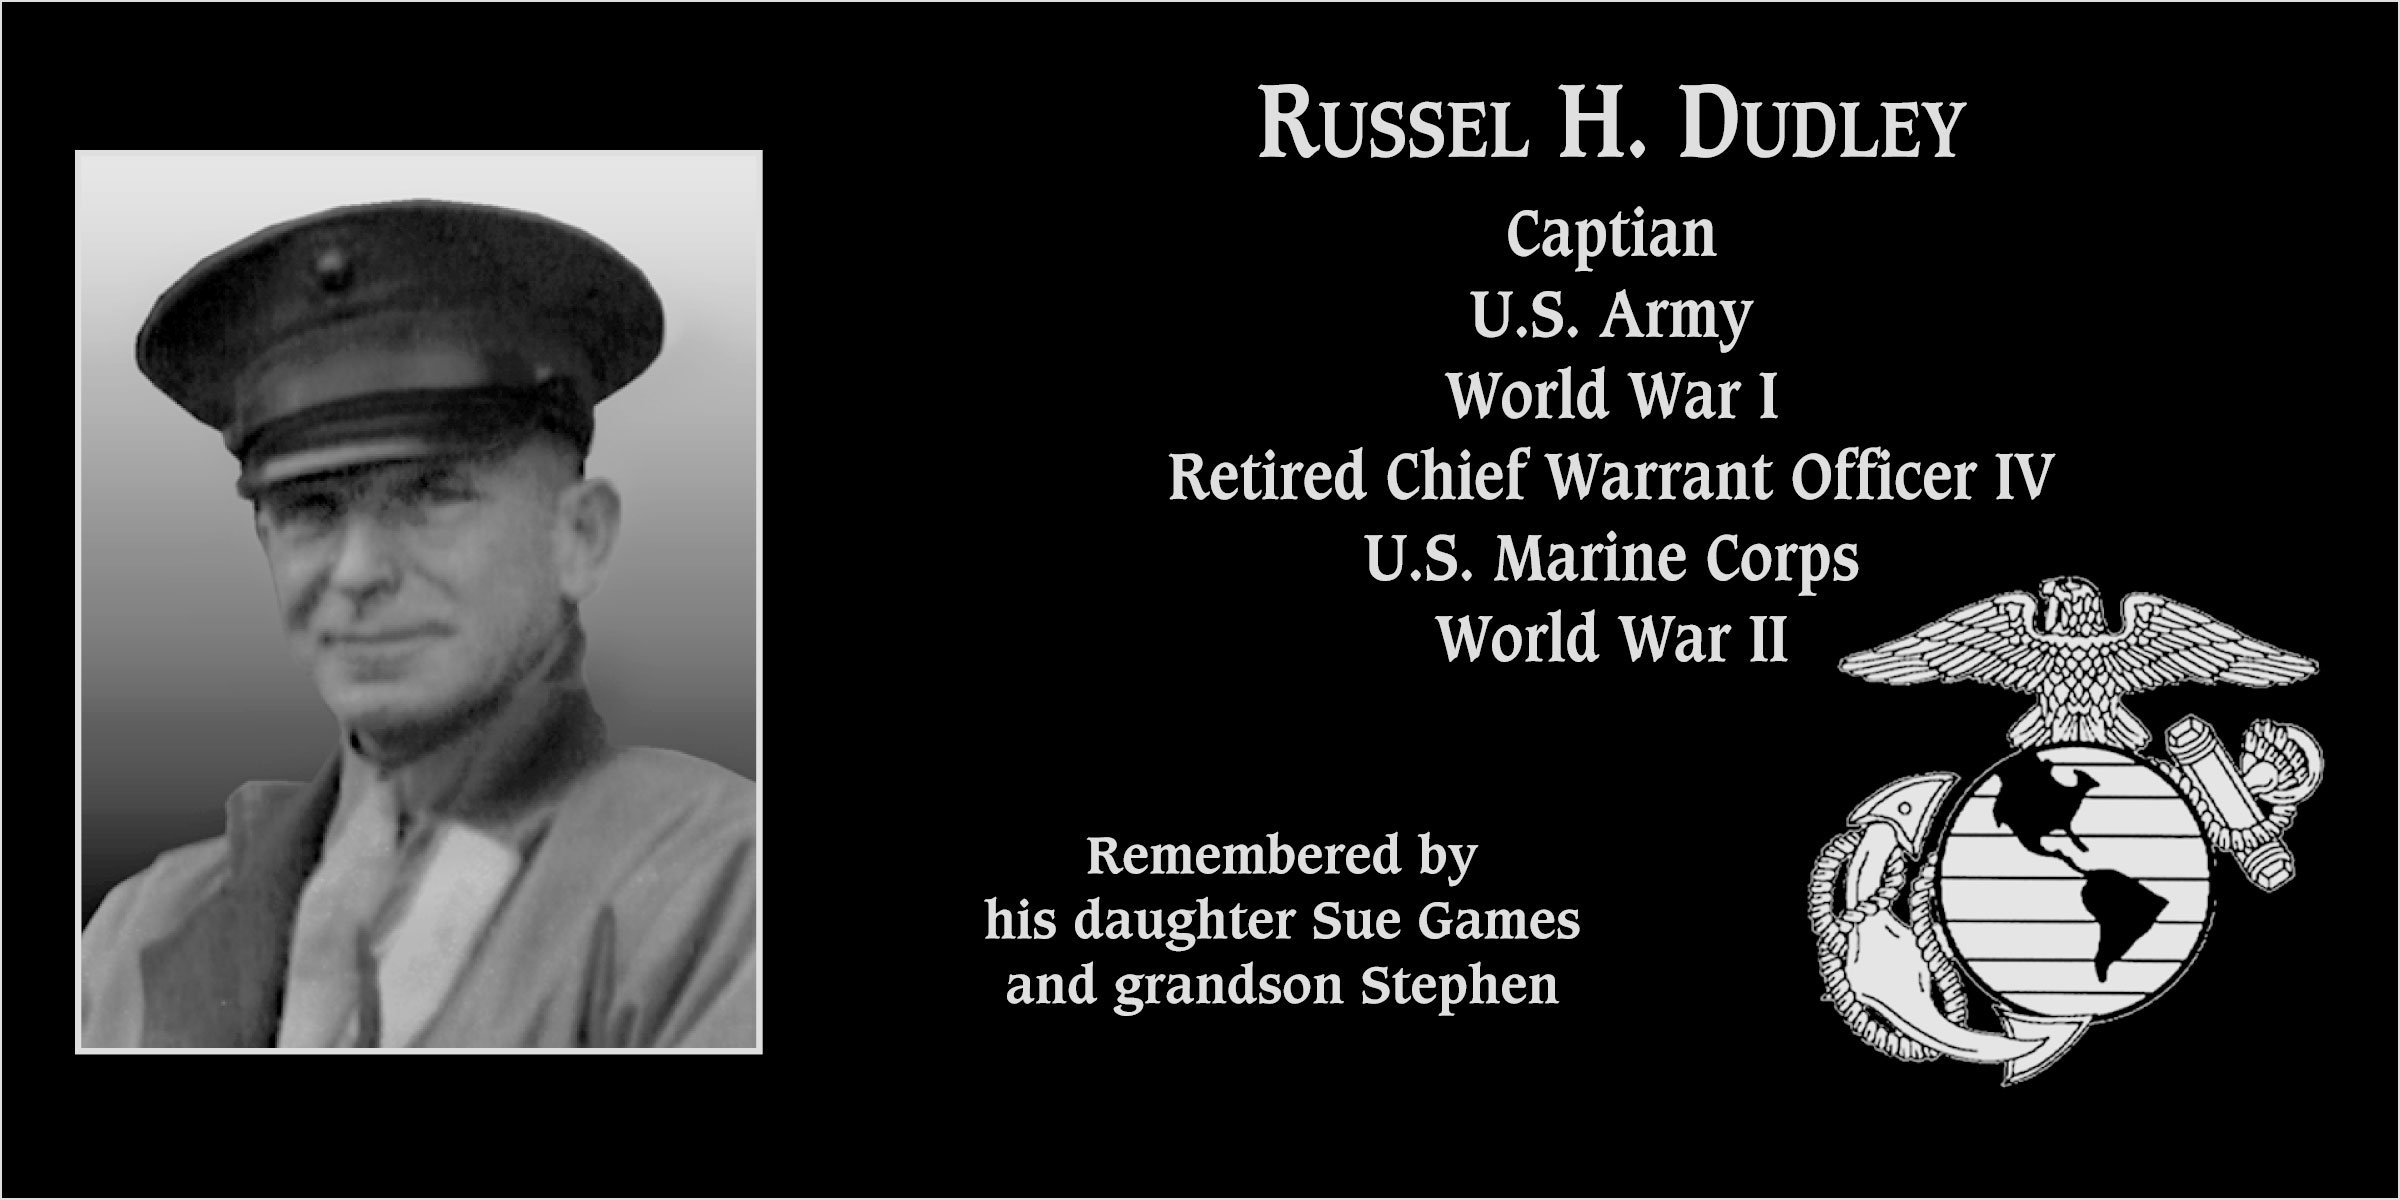 Russel H. Dudley